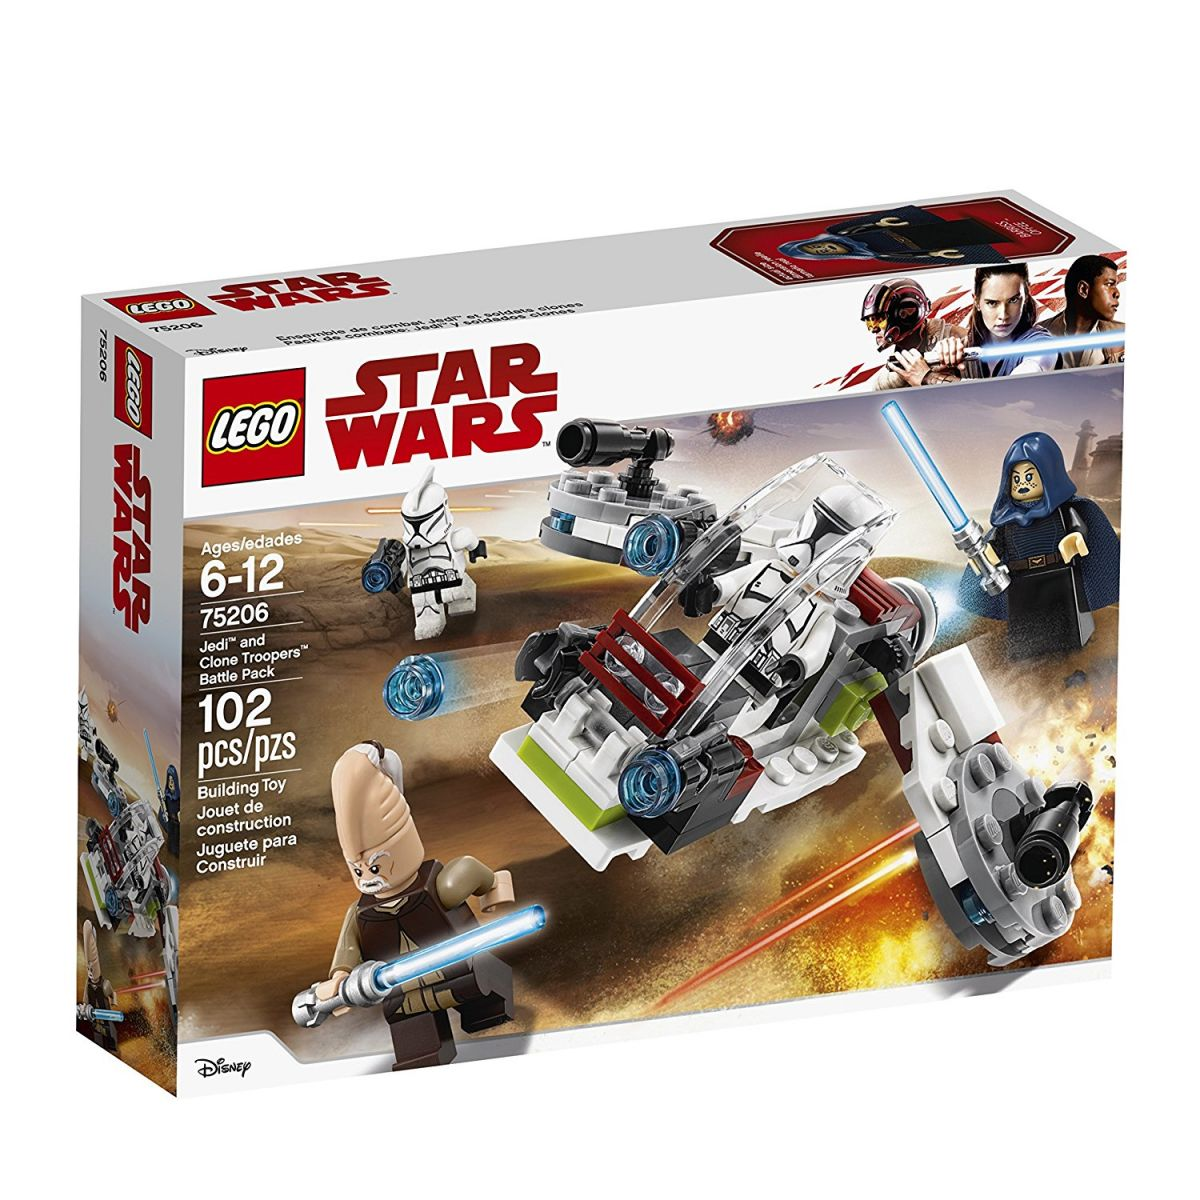 Star Wars Lego Toys : Official images for new han solo lego star wars sets